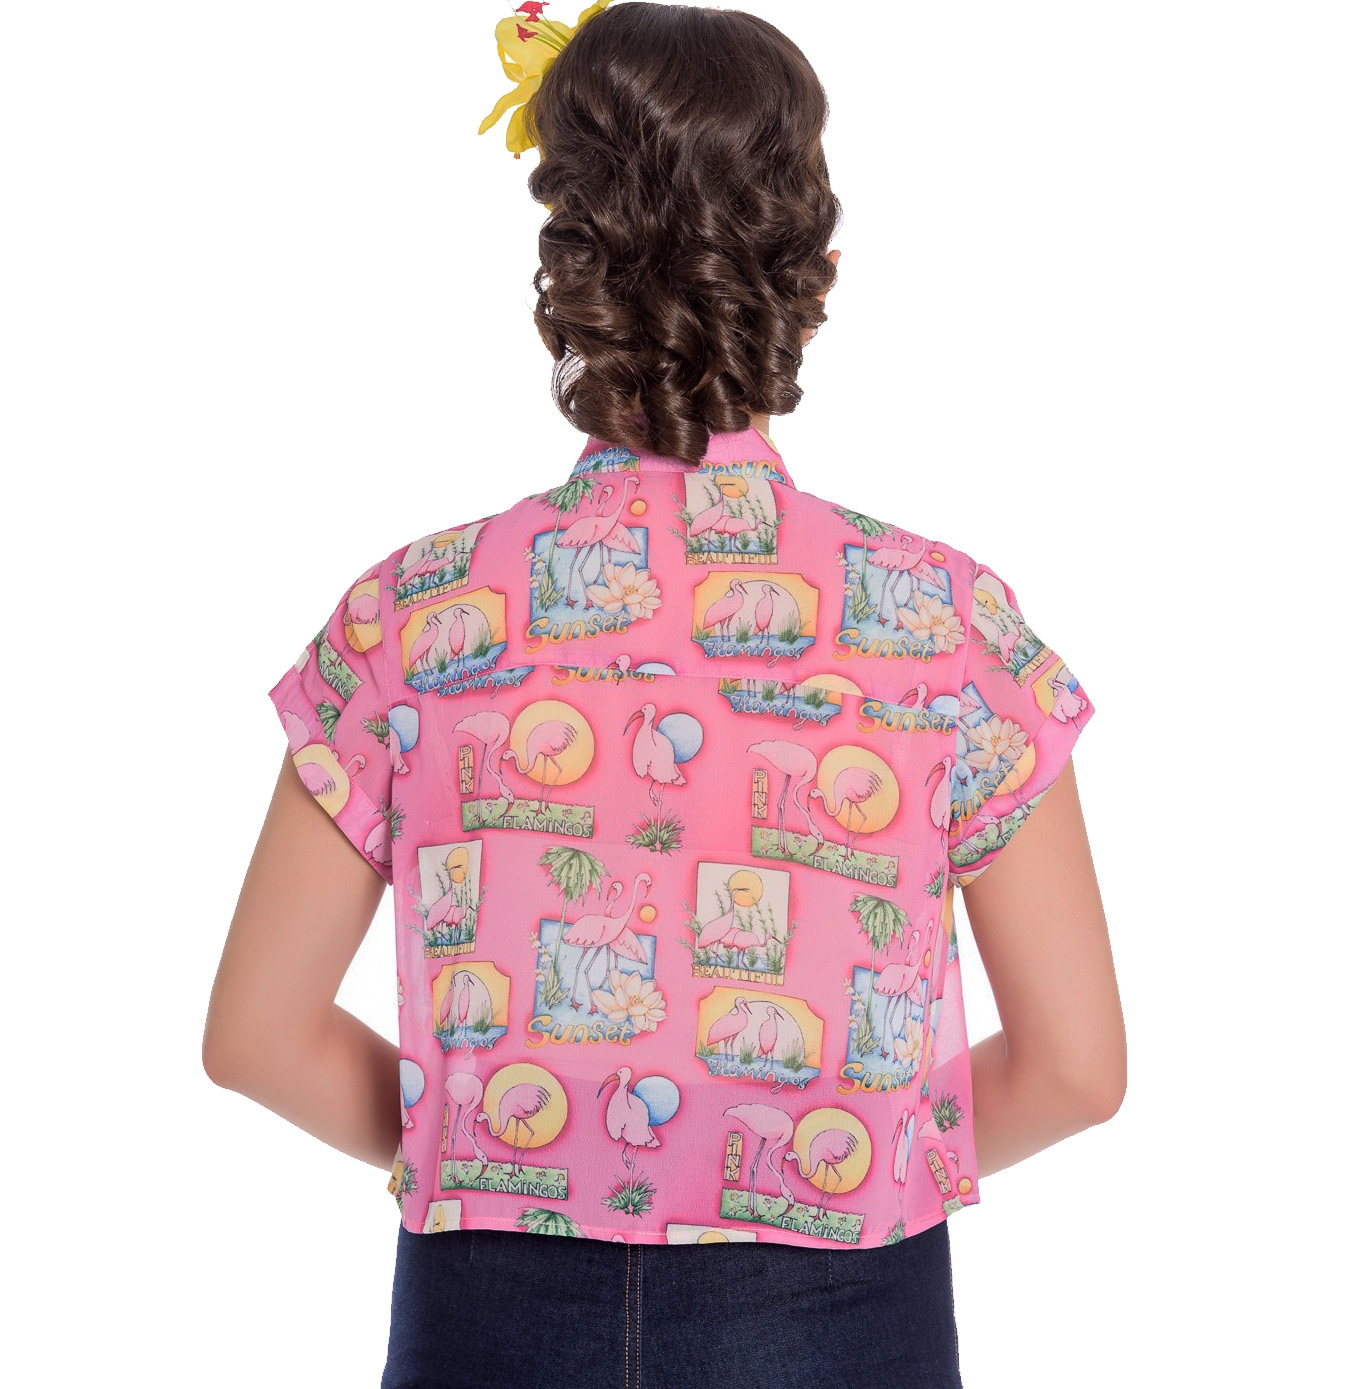 Hell-Bunny-50s-Retro-Top-Pink-Flamingo-MAXINE-Cropped-Blouse-Shirt-All-Sizes thumbnail 33